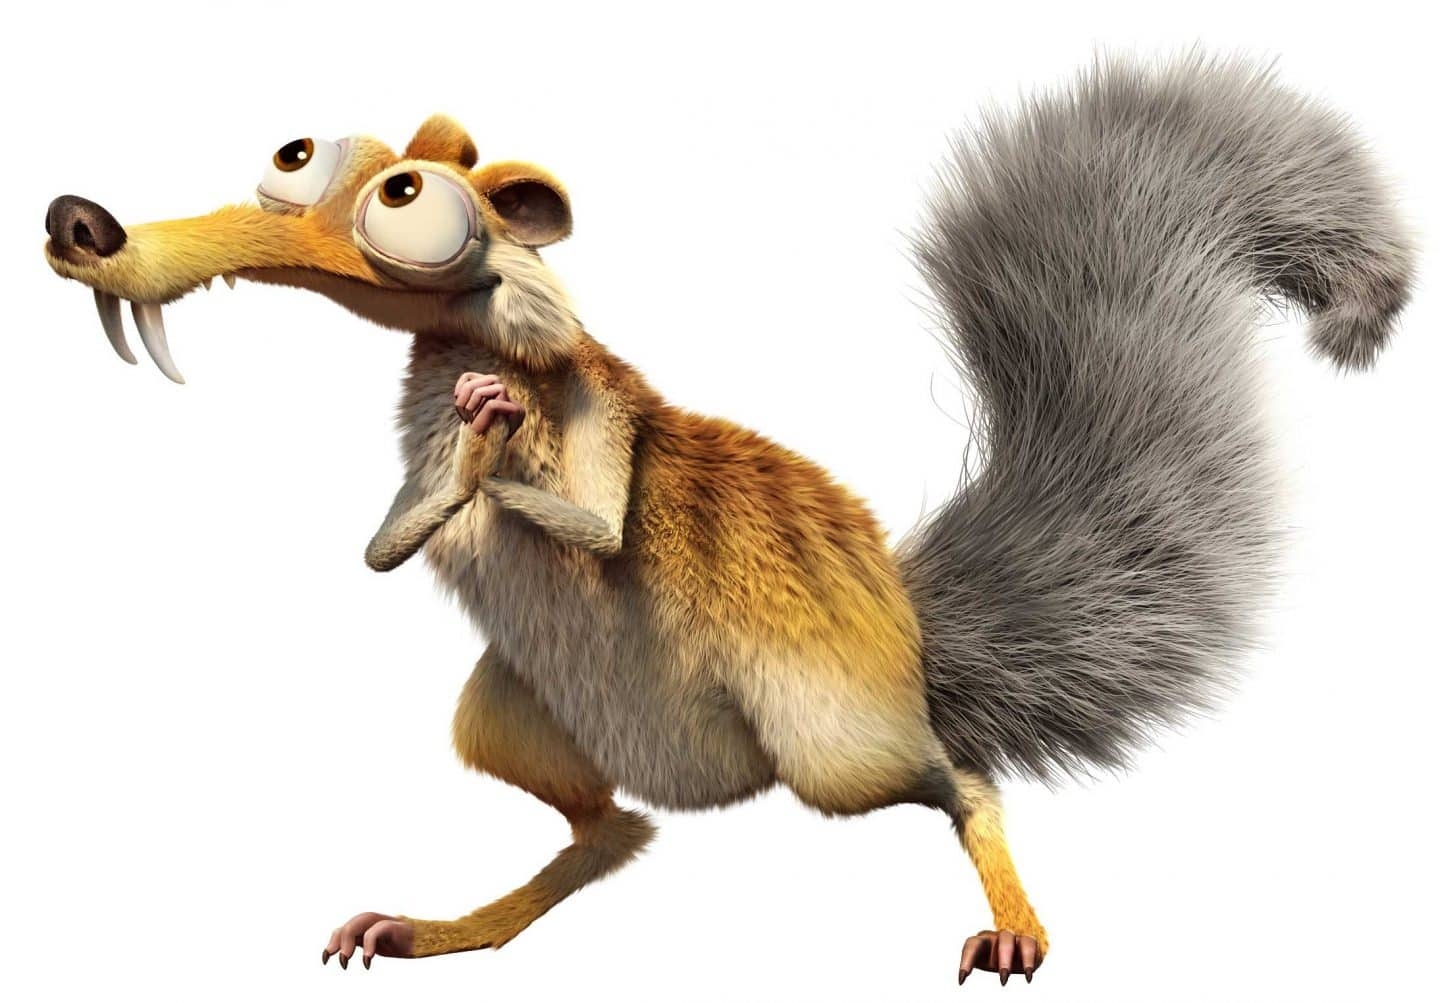 Please Stop Making the Ice Age Movies: An Open Letter to the Studio from Scrat